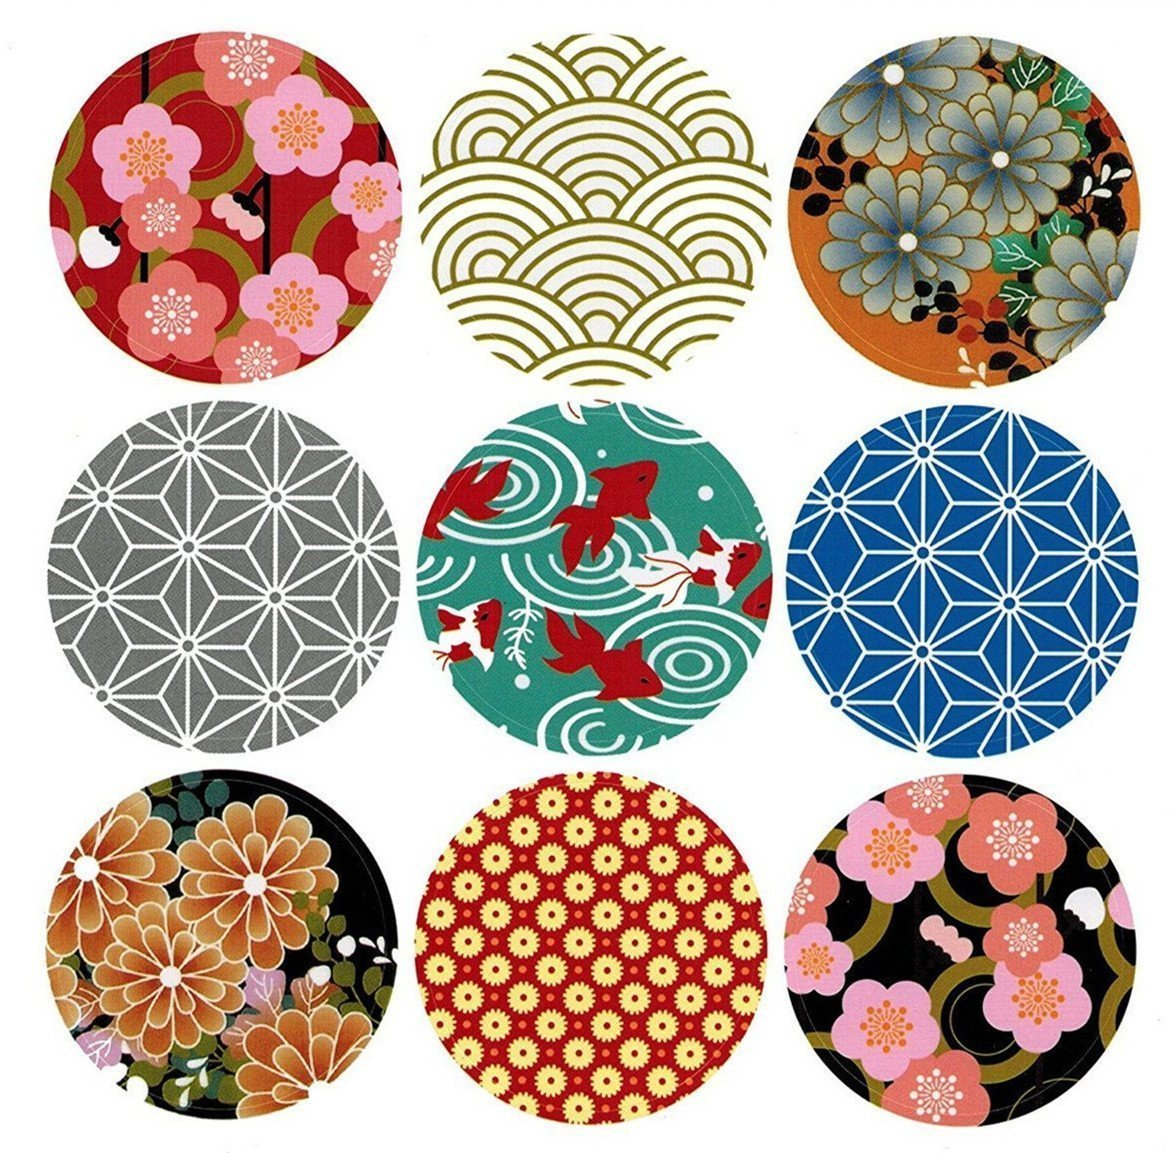 Abbonna Japan Traditional Style Japanese Pattern Stickers Self-Adhesive Universal Sealing Crafts Handmade Baked Envelope Label Decorative Labels 90 Pcs/10 sheets, Unique Design